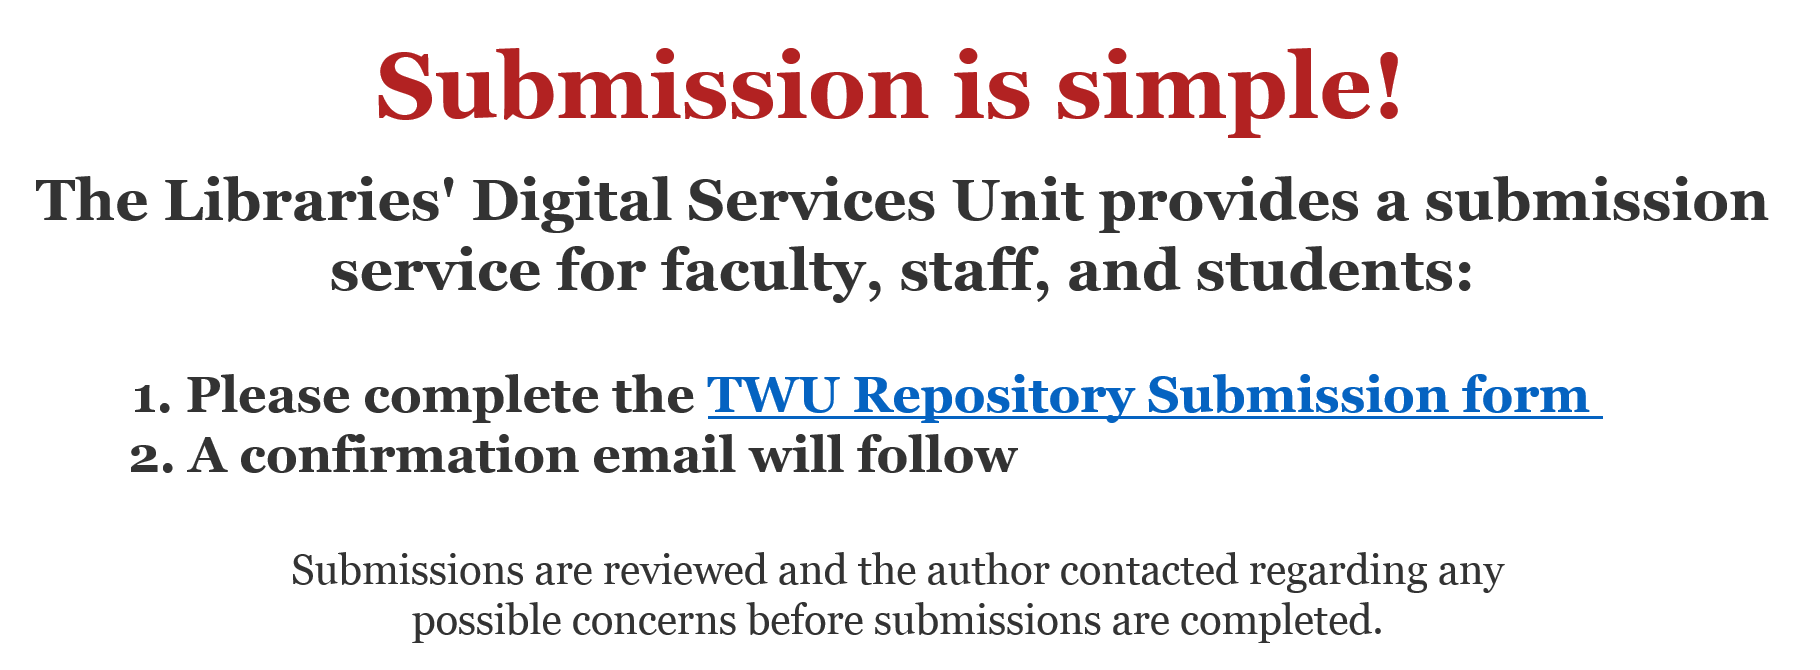 Submission is simple! The Libraries' Digital Services Unit provides a submission service for faculty, staff, and students. 1. Please complete the Repository Submission Form by clicking on this image. 2. A confirmation email will follow.  Submissions are reviewed and the author contacted regarding any possible concerns before submissions are completed.